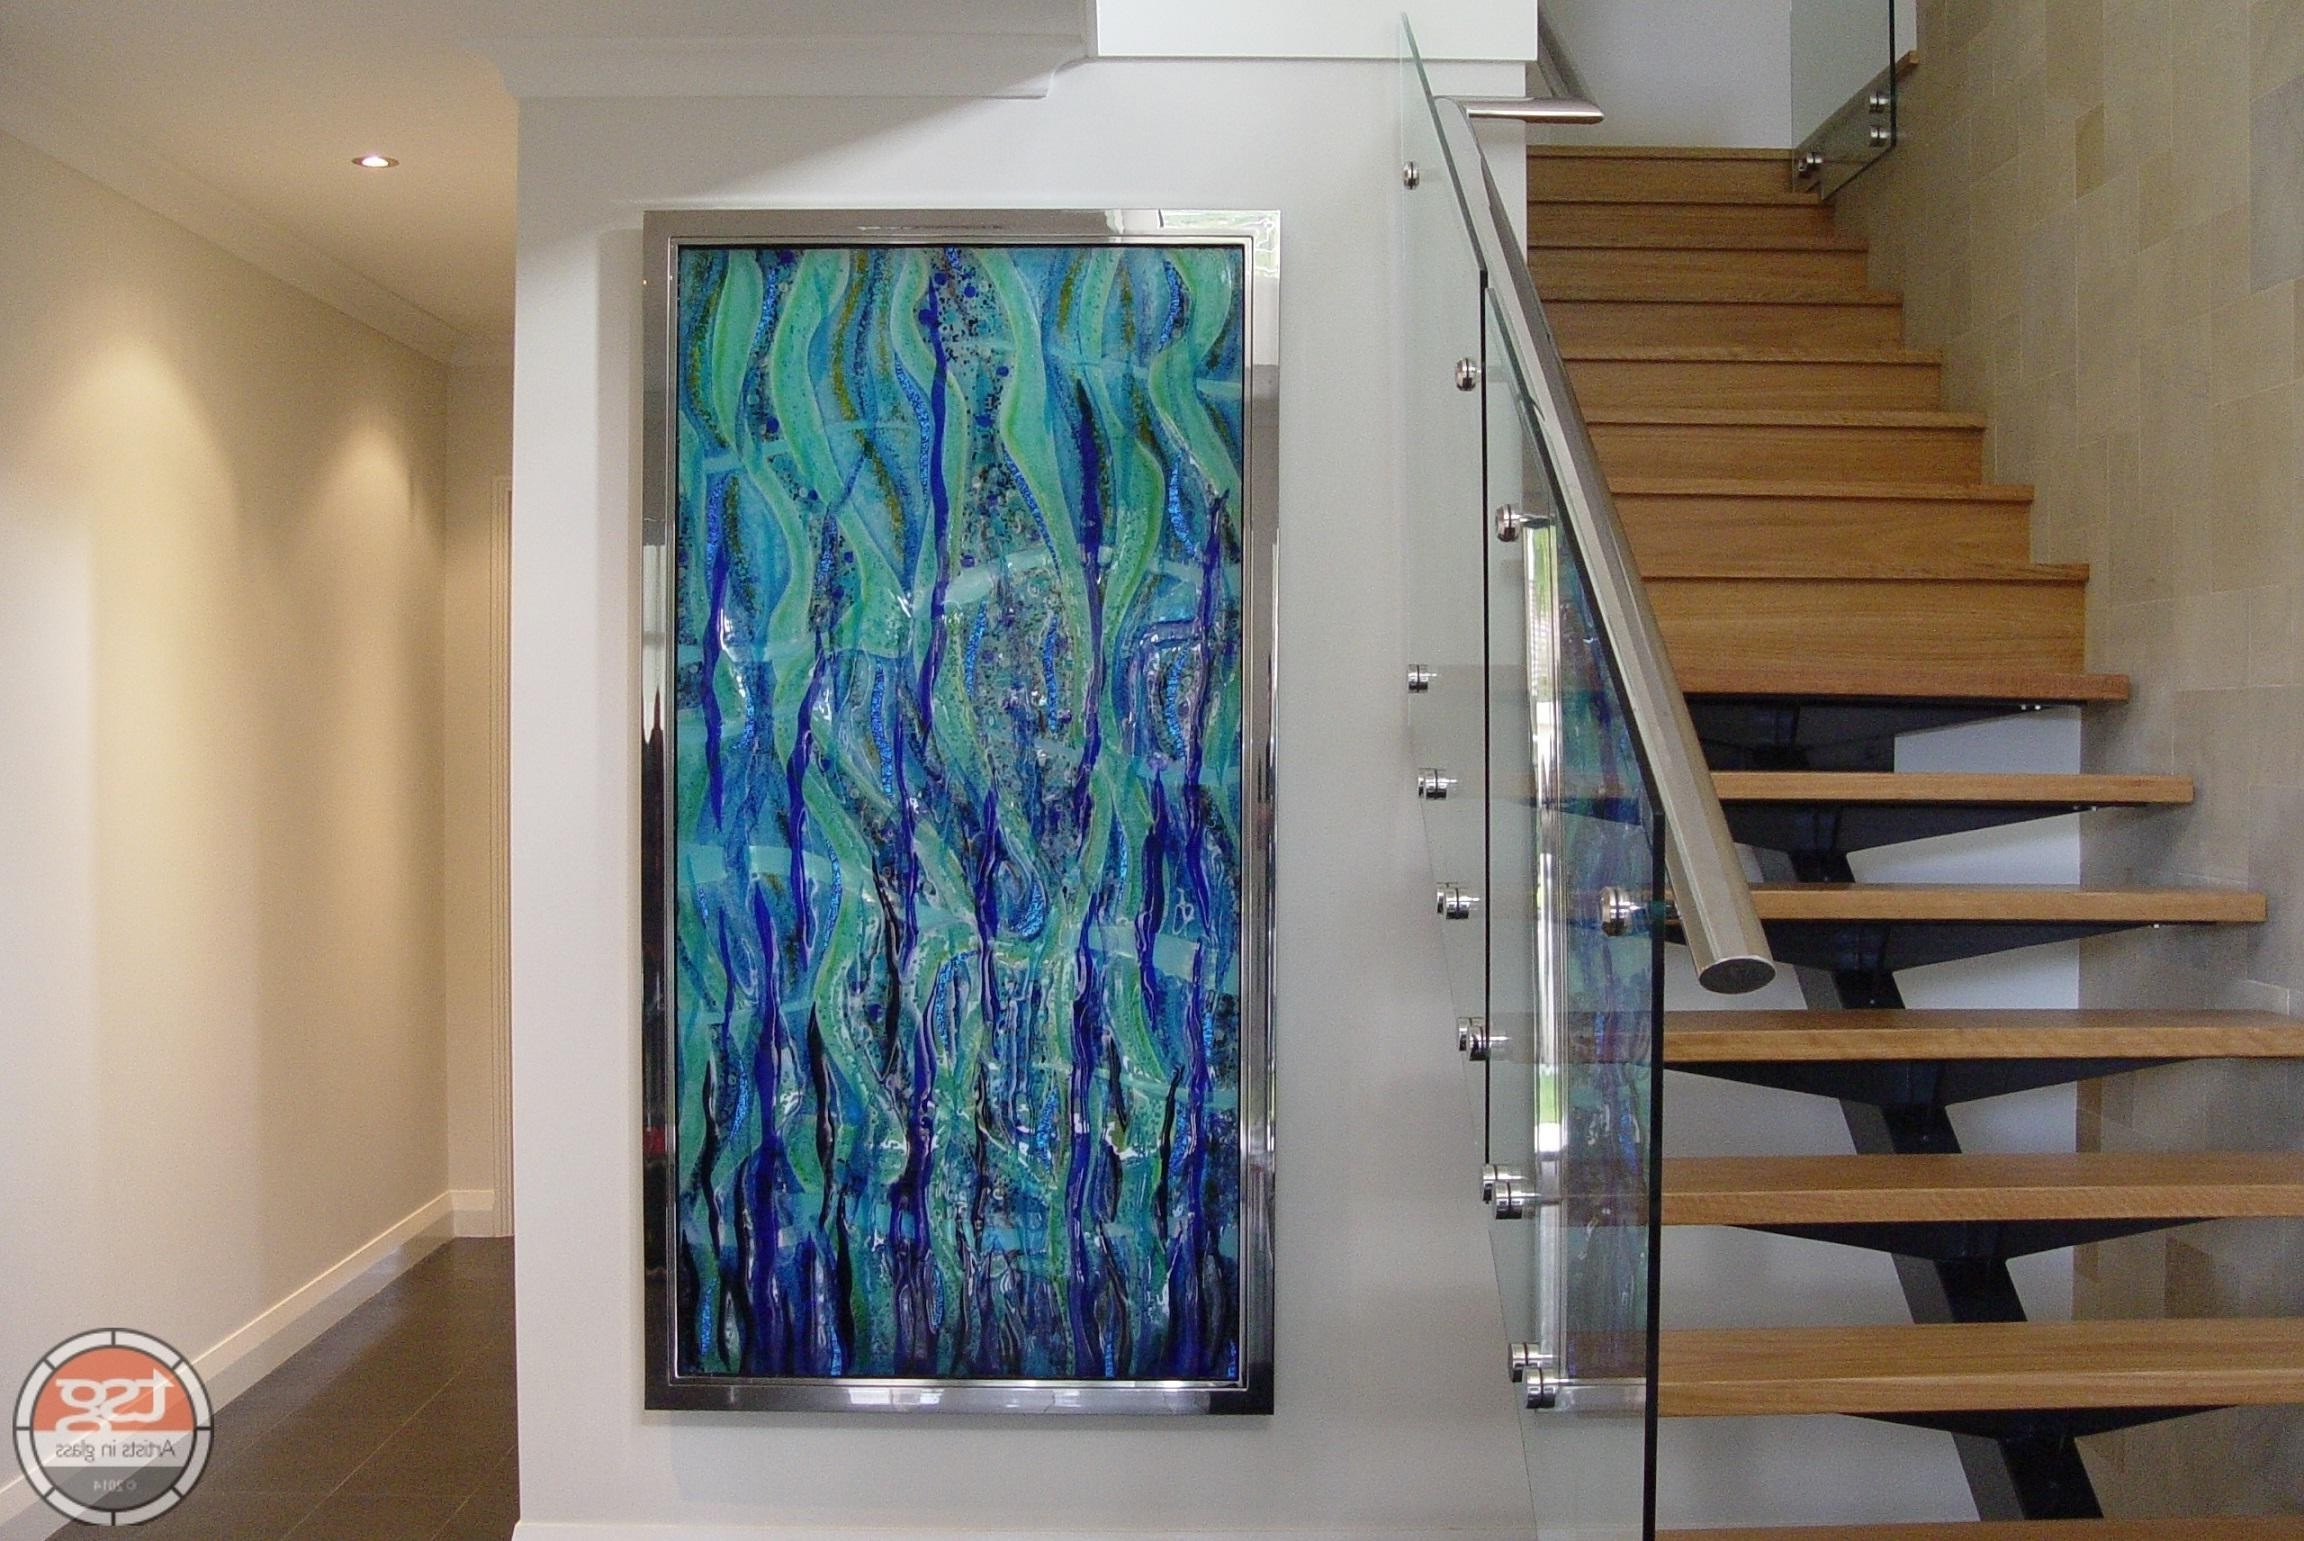 Trendy Popular Beach Triptych Fused Glass Wall Artjo Downs Beach Inside Contemporary Fused Glass Wall Art (View 7 of 15)